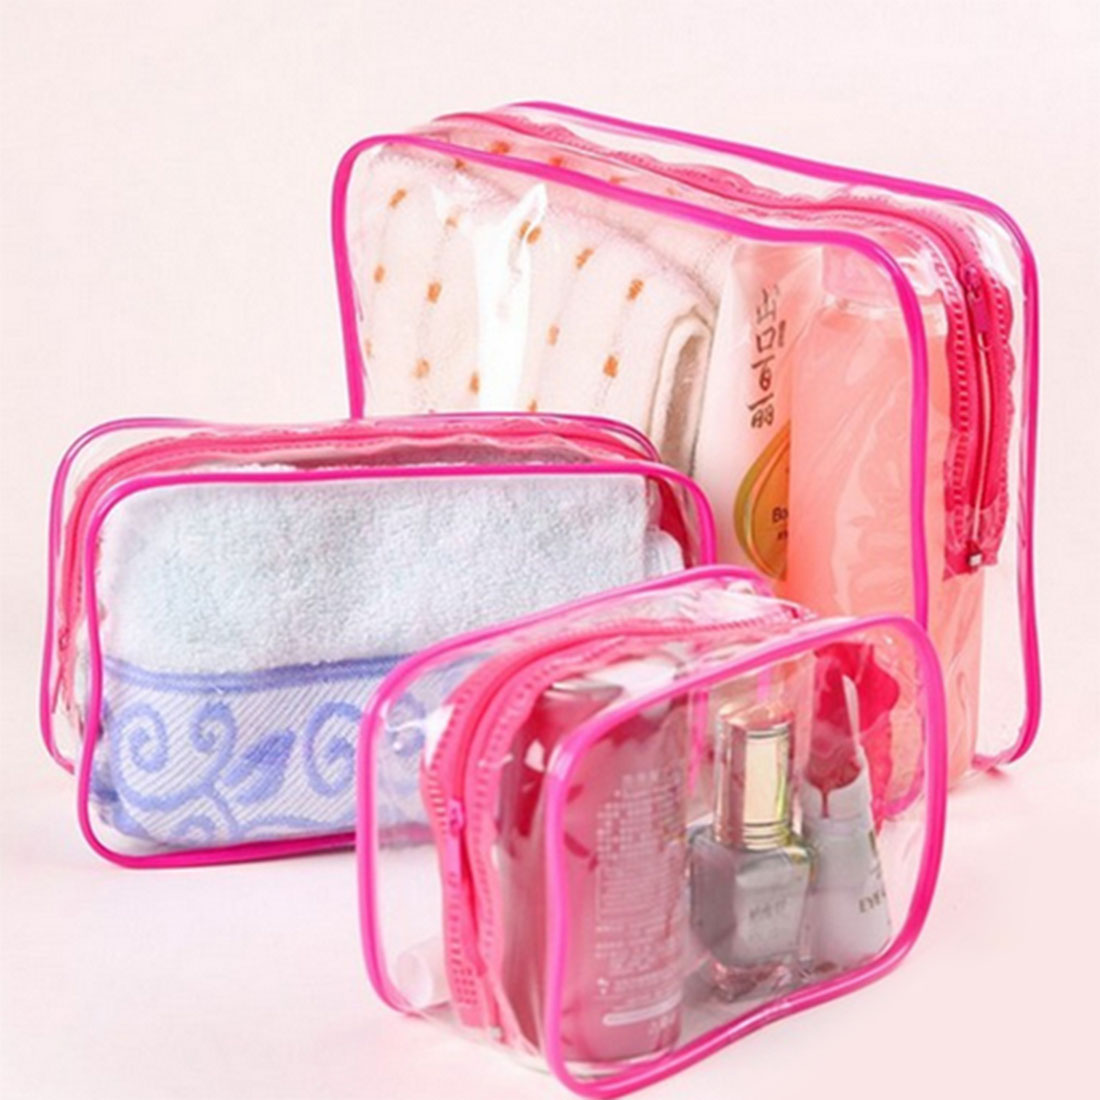 3PCS/Set Waterproof Transparent Cosmetic Bag Women Portable Toiletry Kits Cosmetic Organizer Brand Make Up Bags Free Shipping